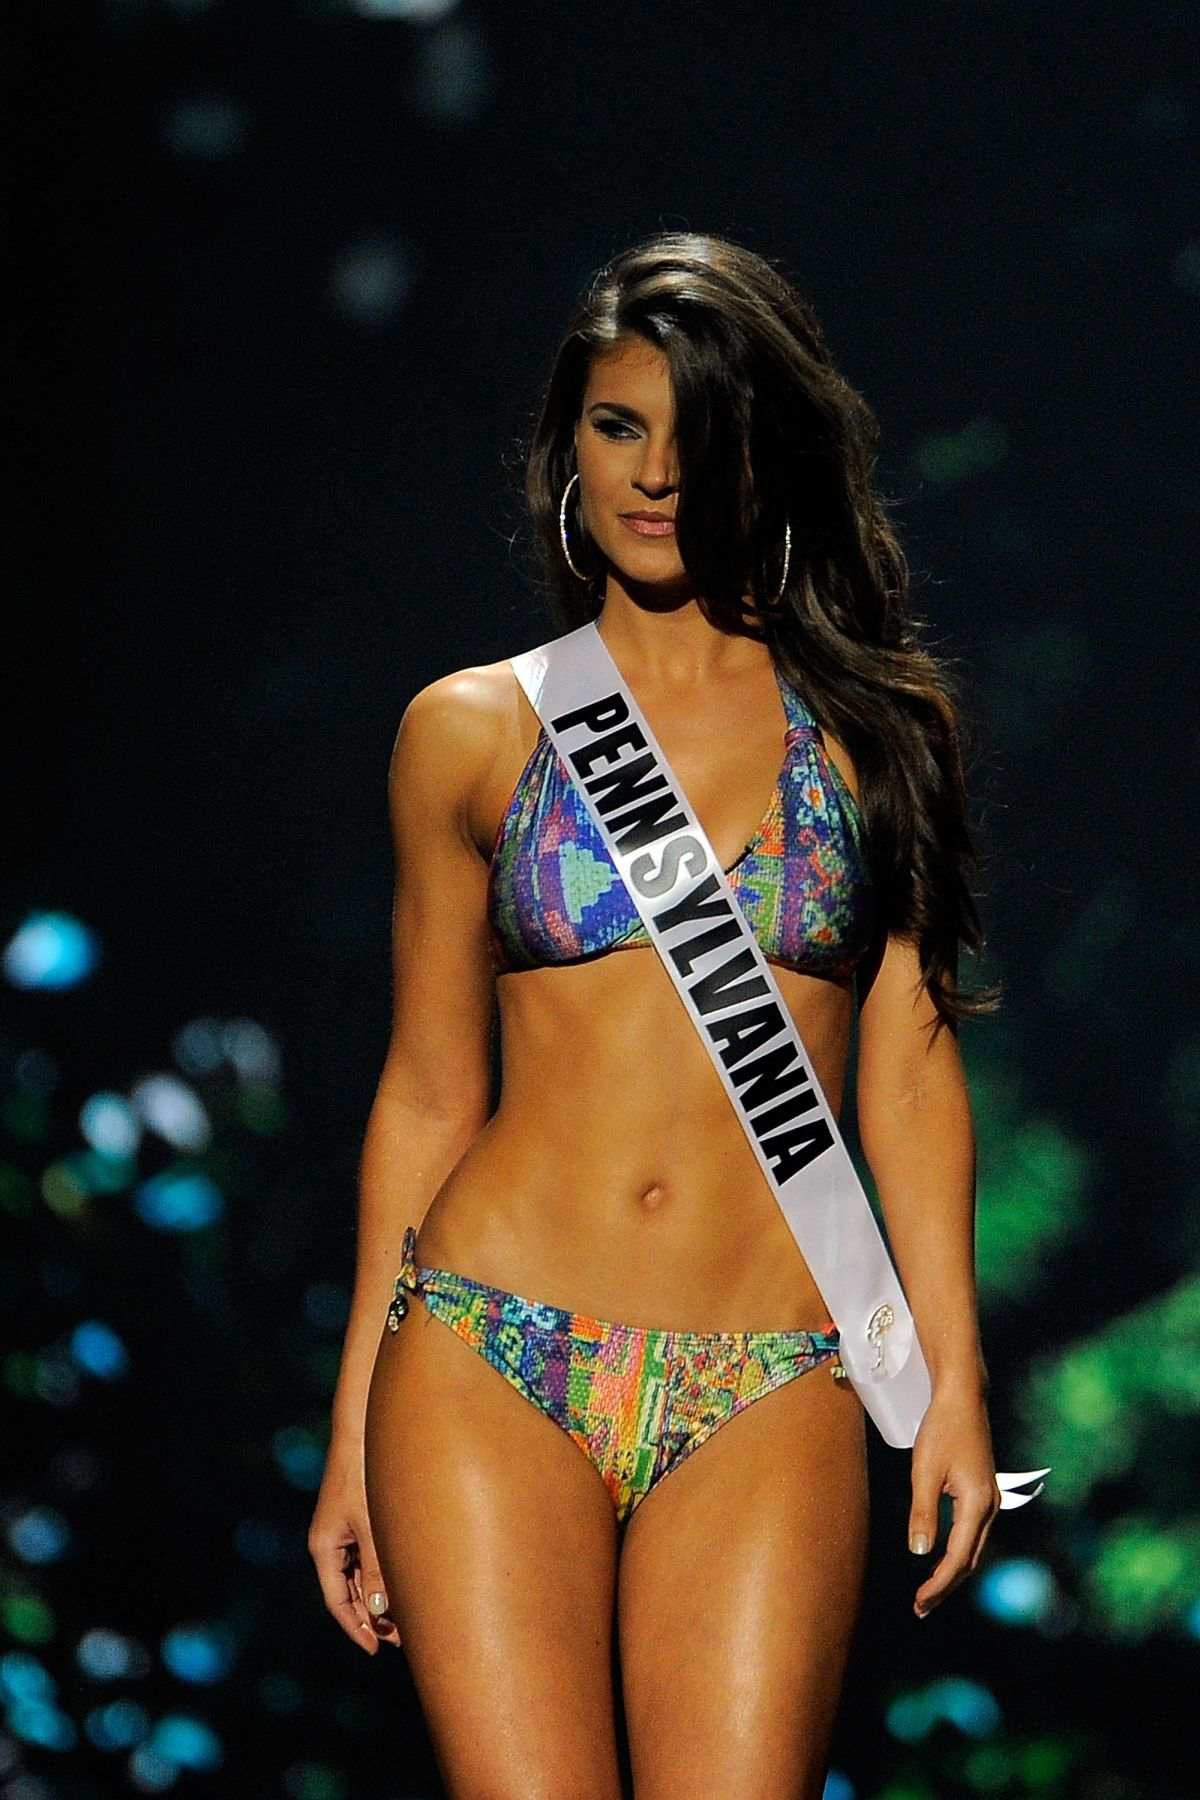 VALERIE GATTO at Miss USA 2014 Preliminary Competition